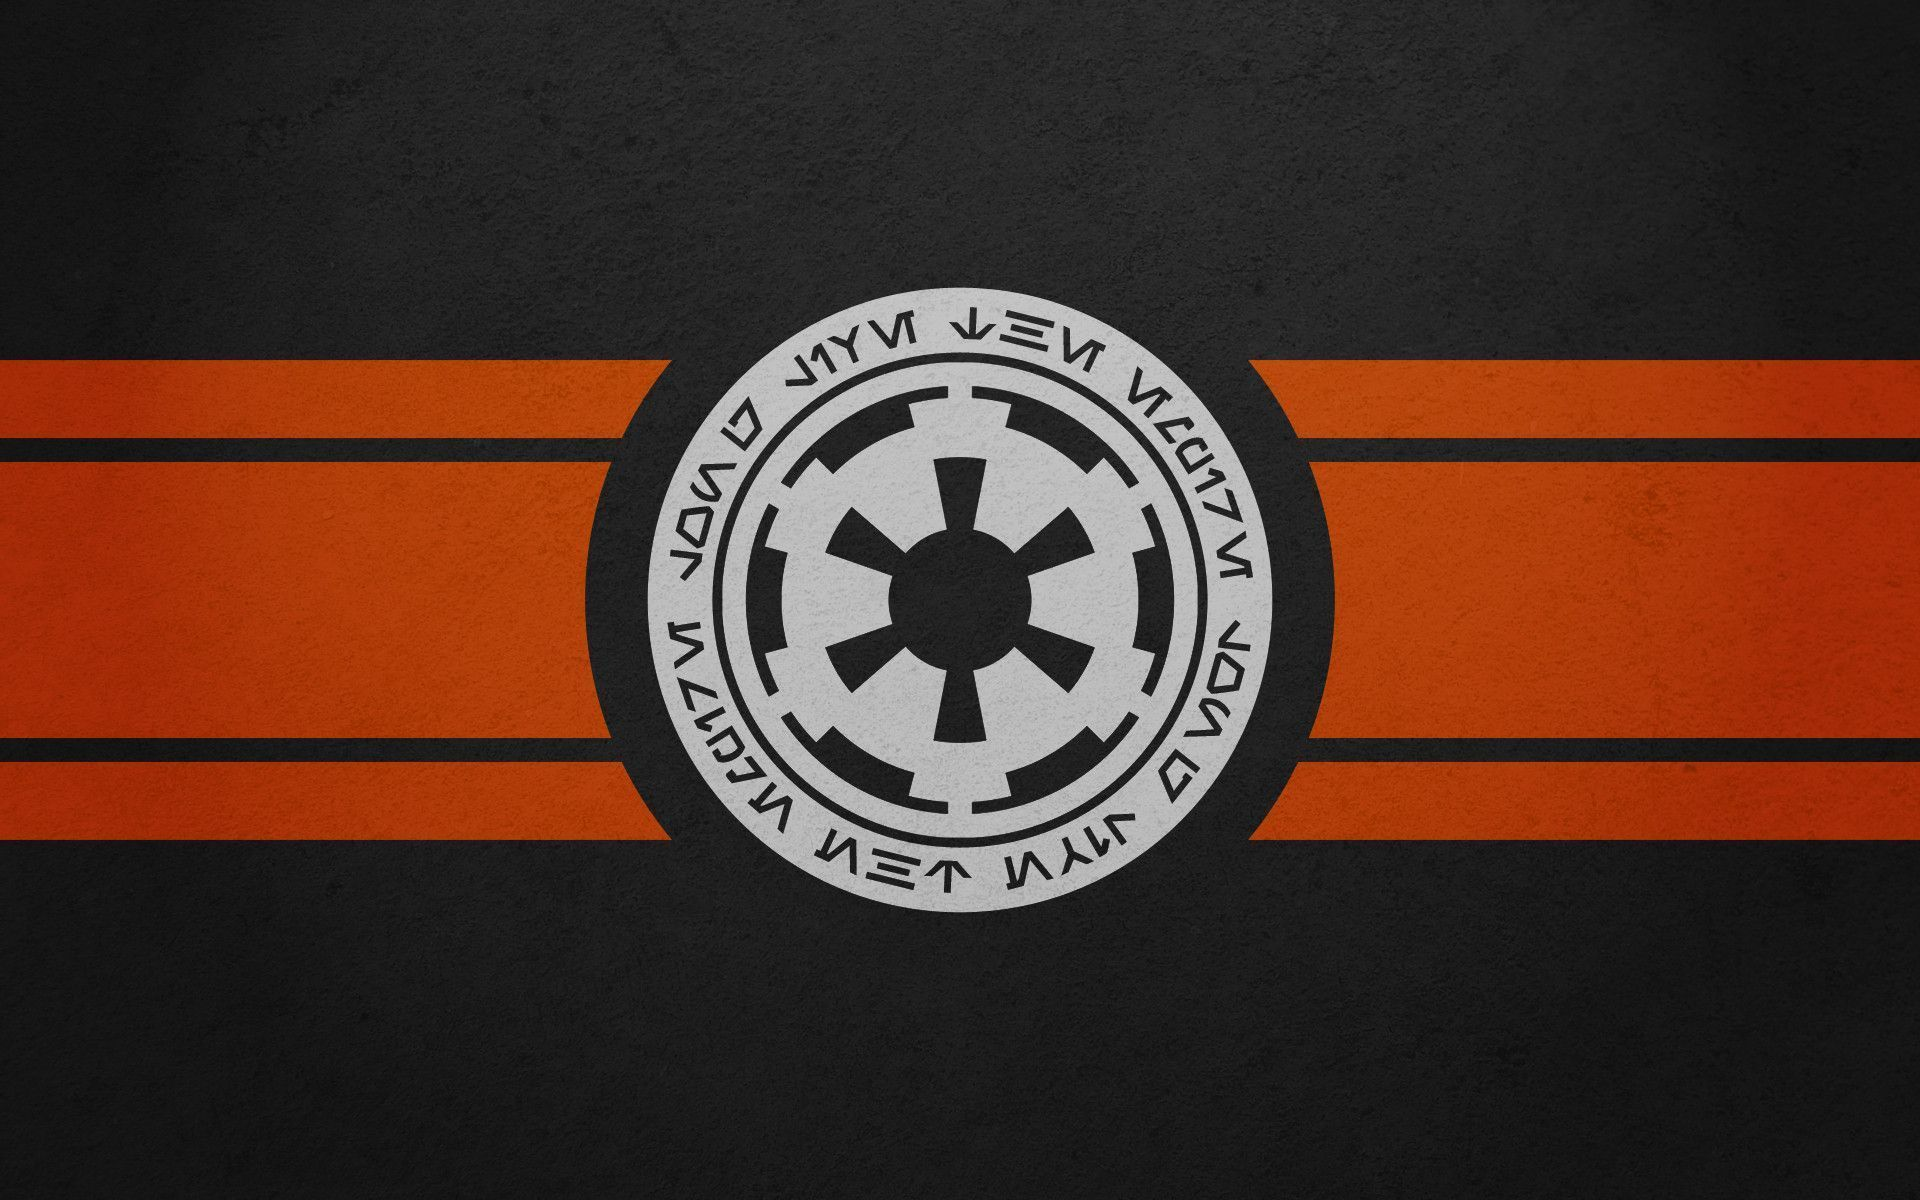 Star Wars Imperial Wallpaper